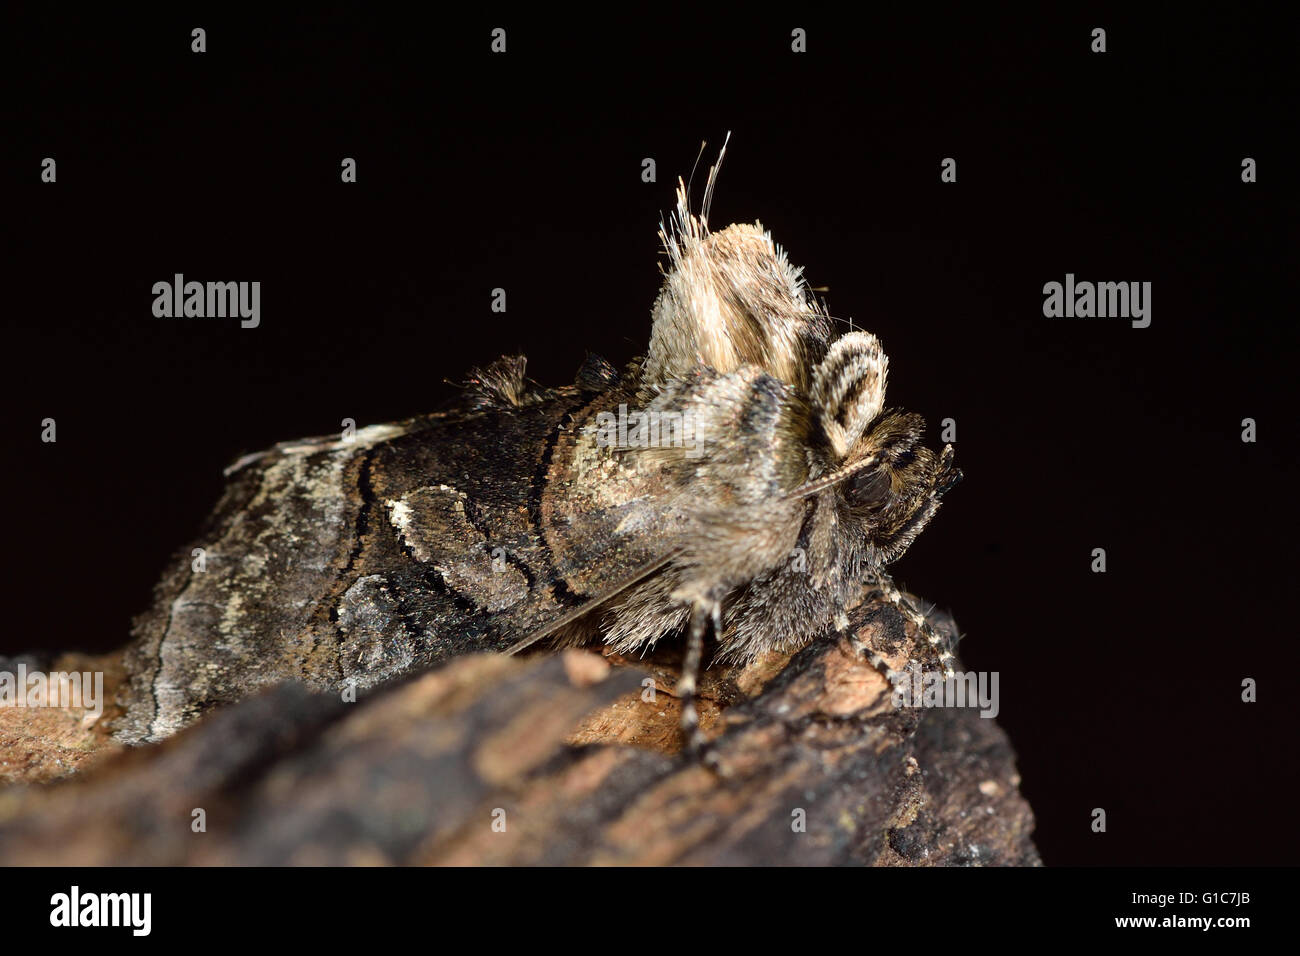 British insect in the family Noctuidae, the largest British family of moths - Stock Image